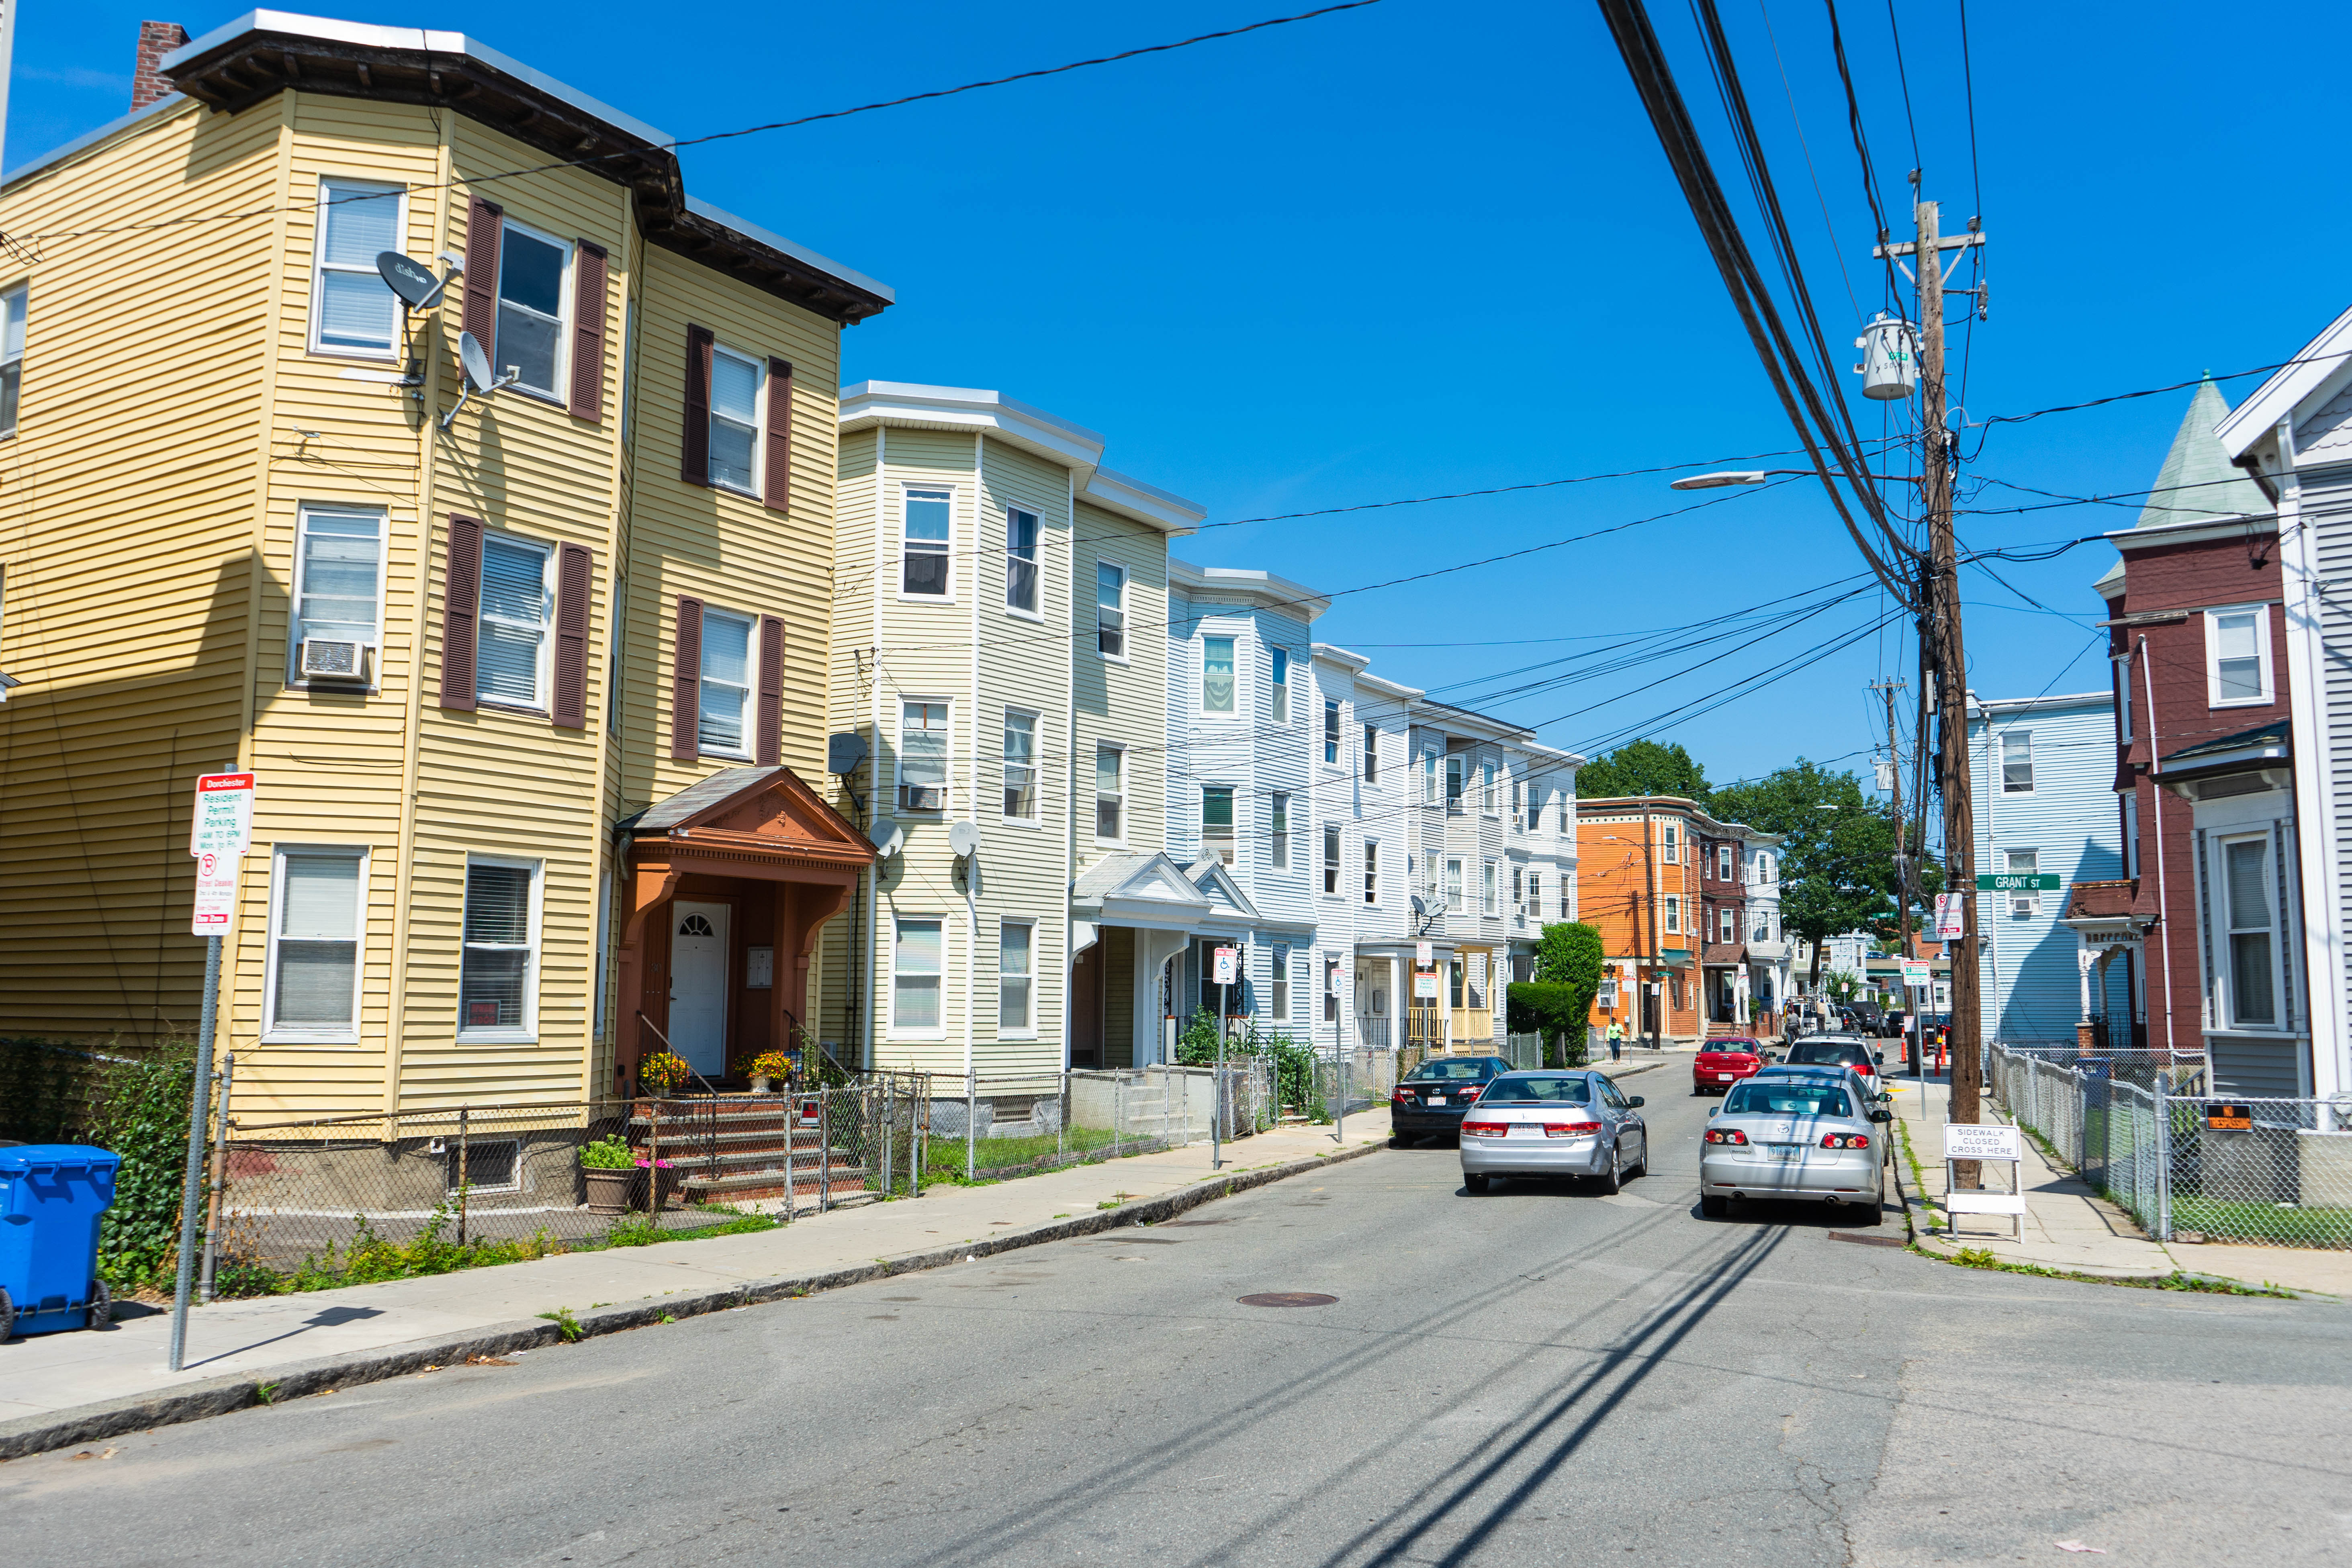 A row of three-story residential buildings along a city street, with cars parked along the street.